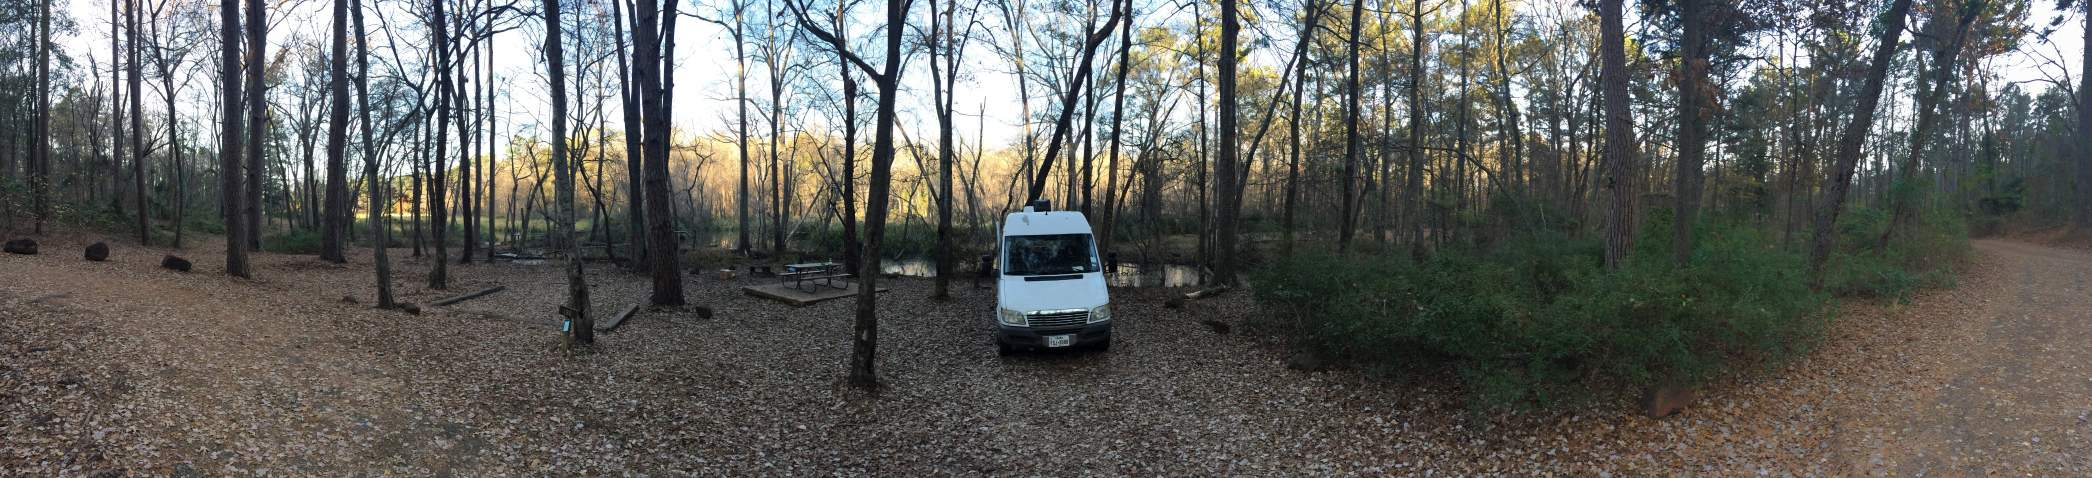 Tyler State Park Camping